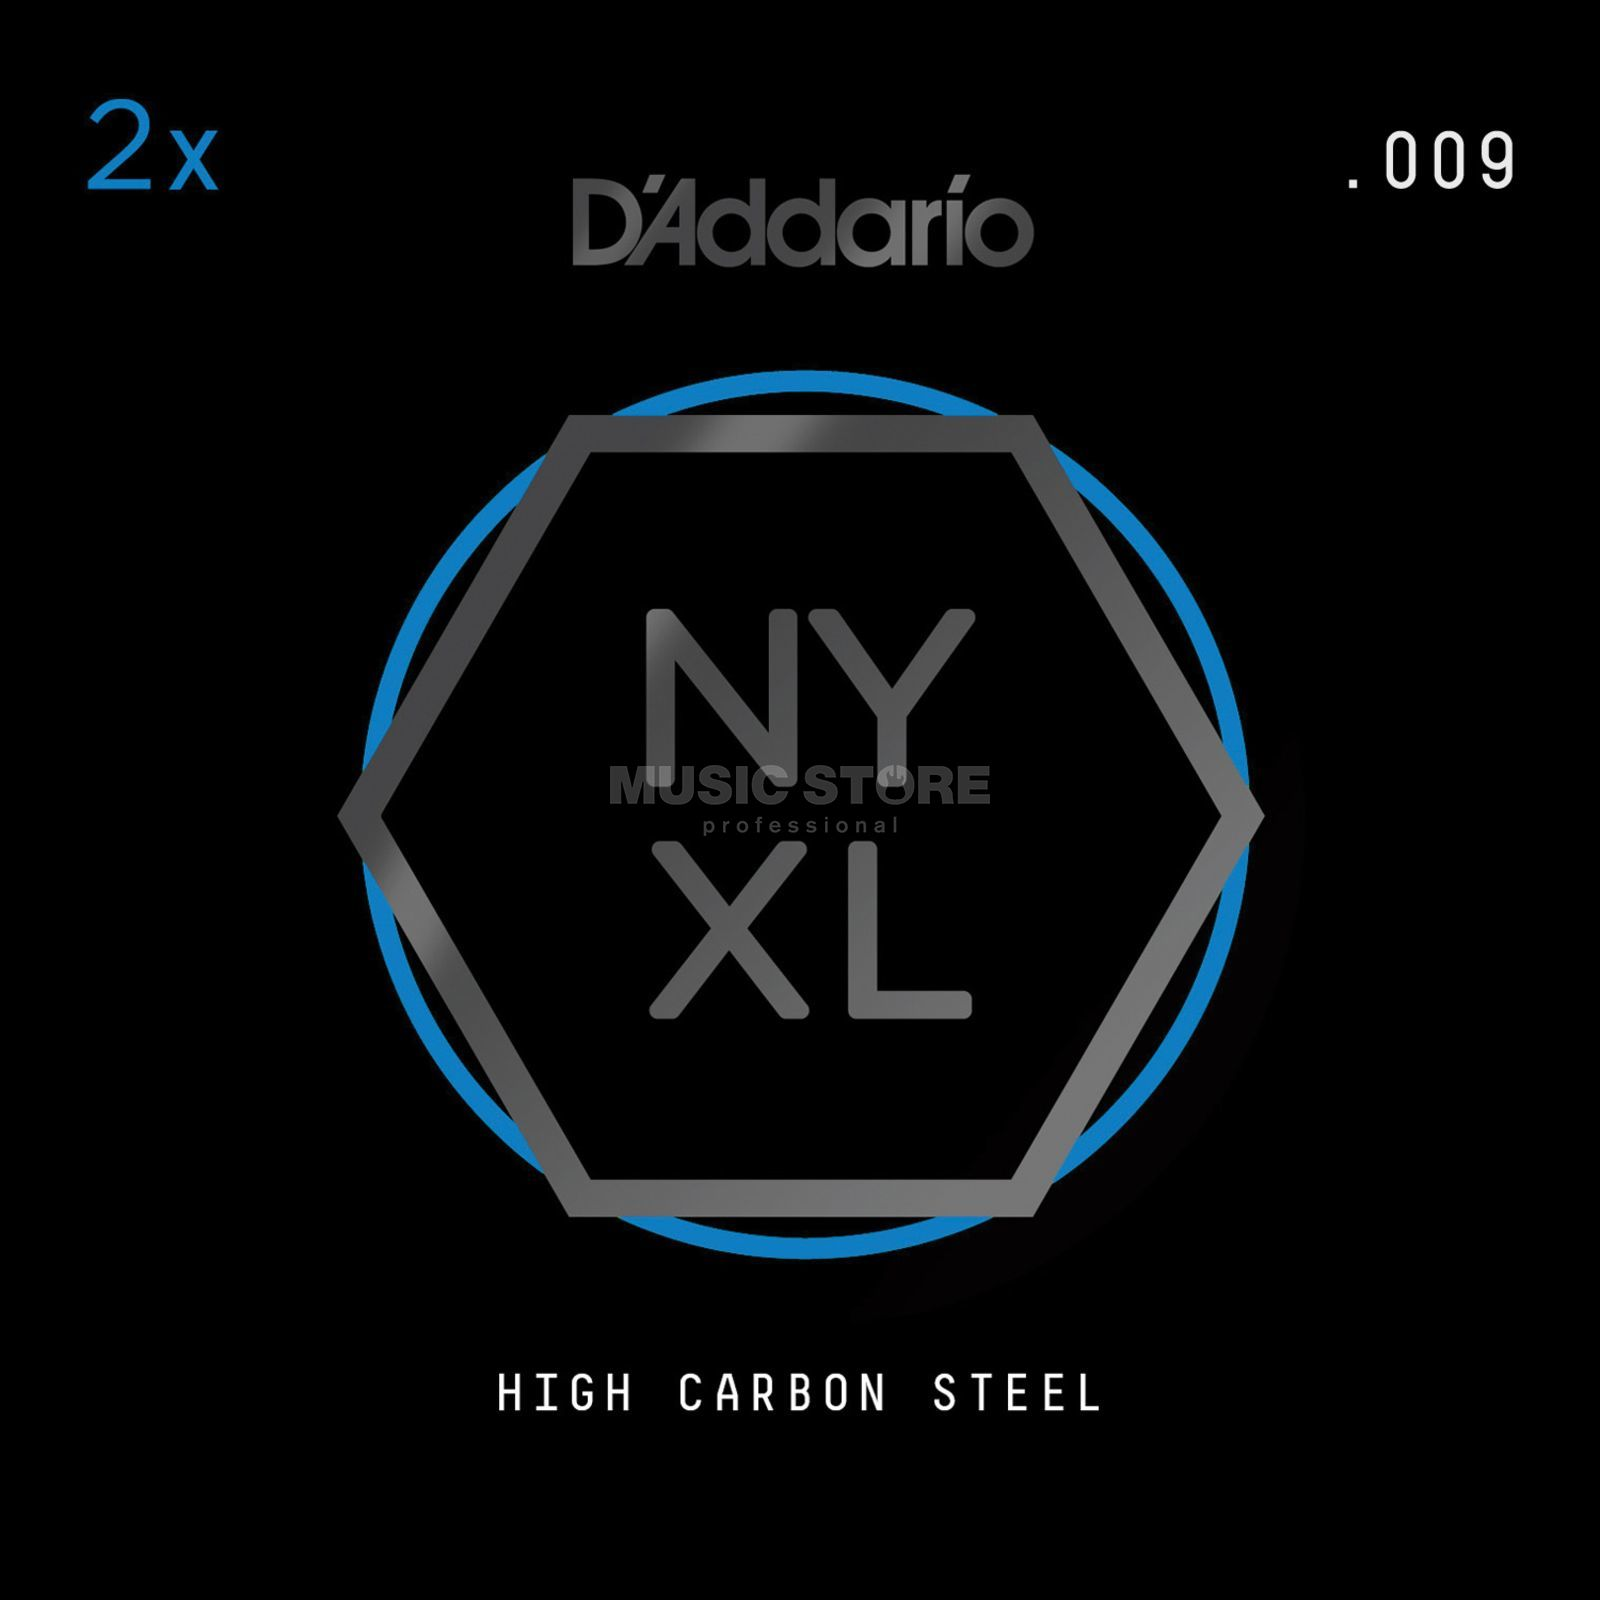 D'Addario NYPL009 Plain Single String 2-Pack - High Carbon Steel Product Image